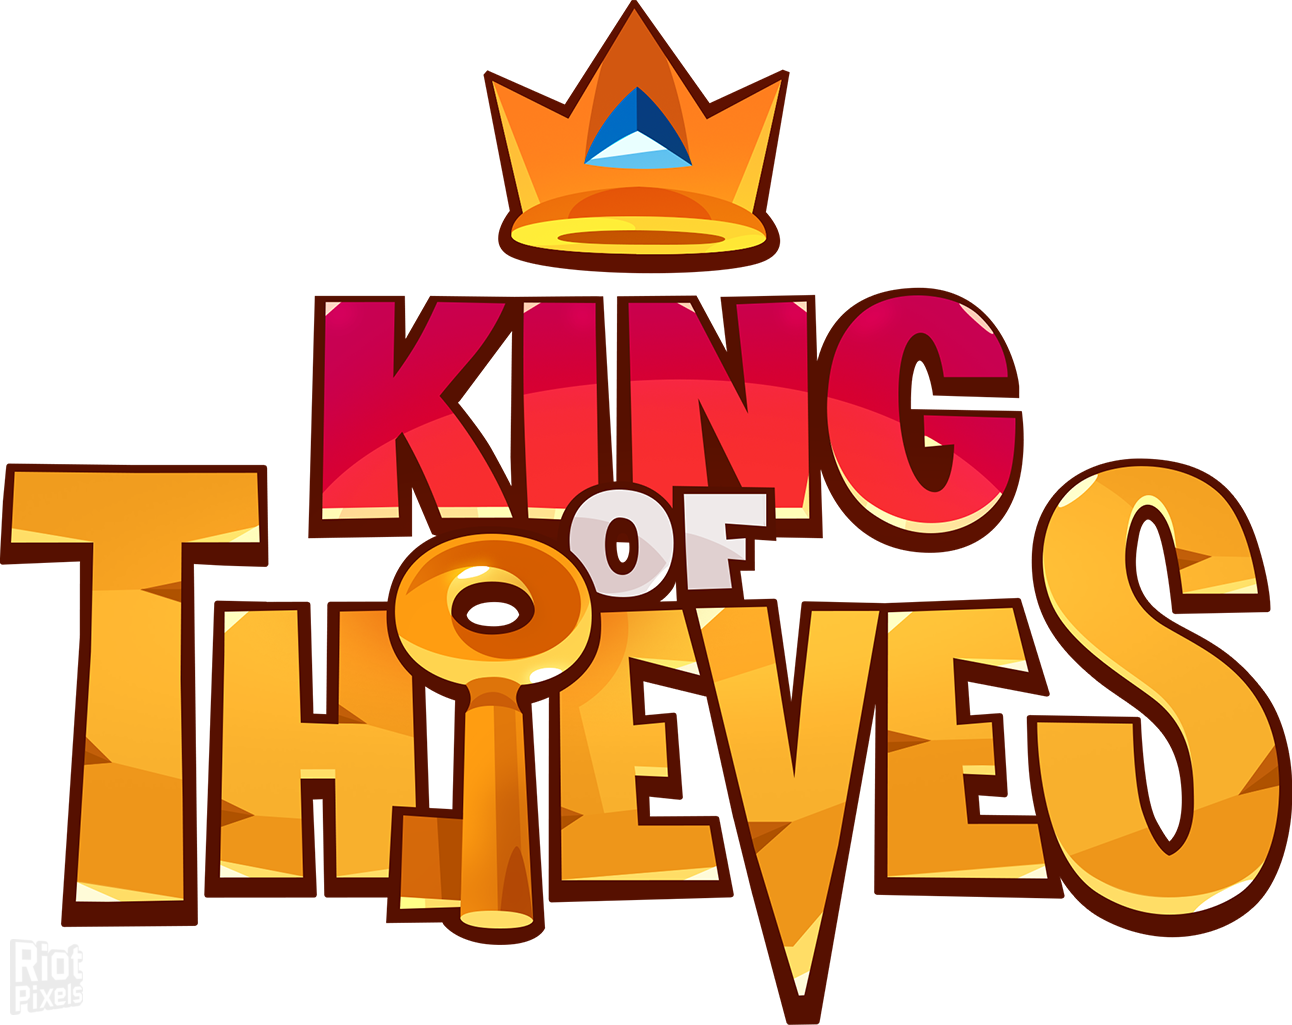 King of thieves раскраска